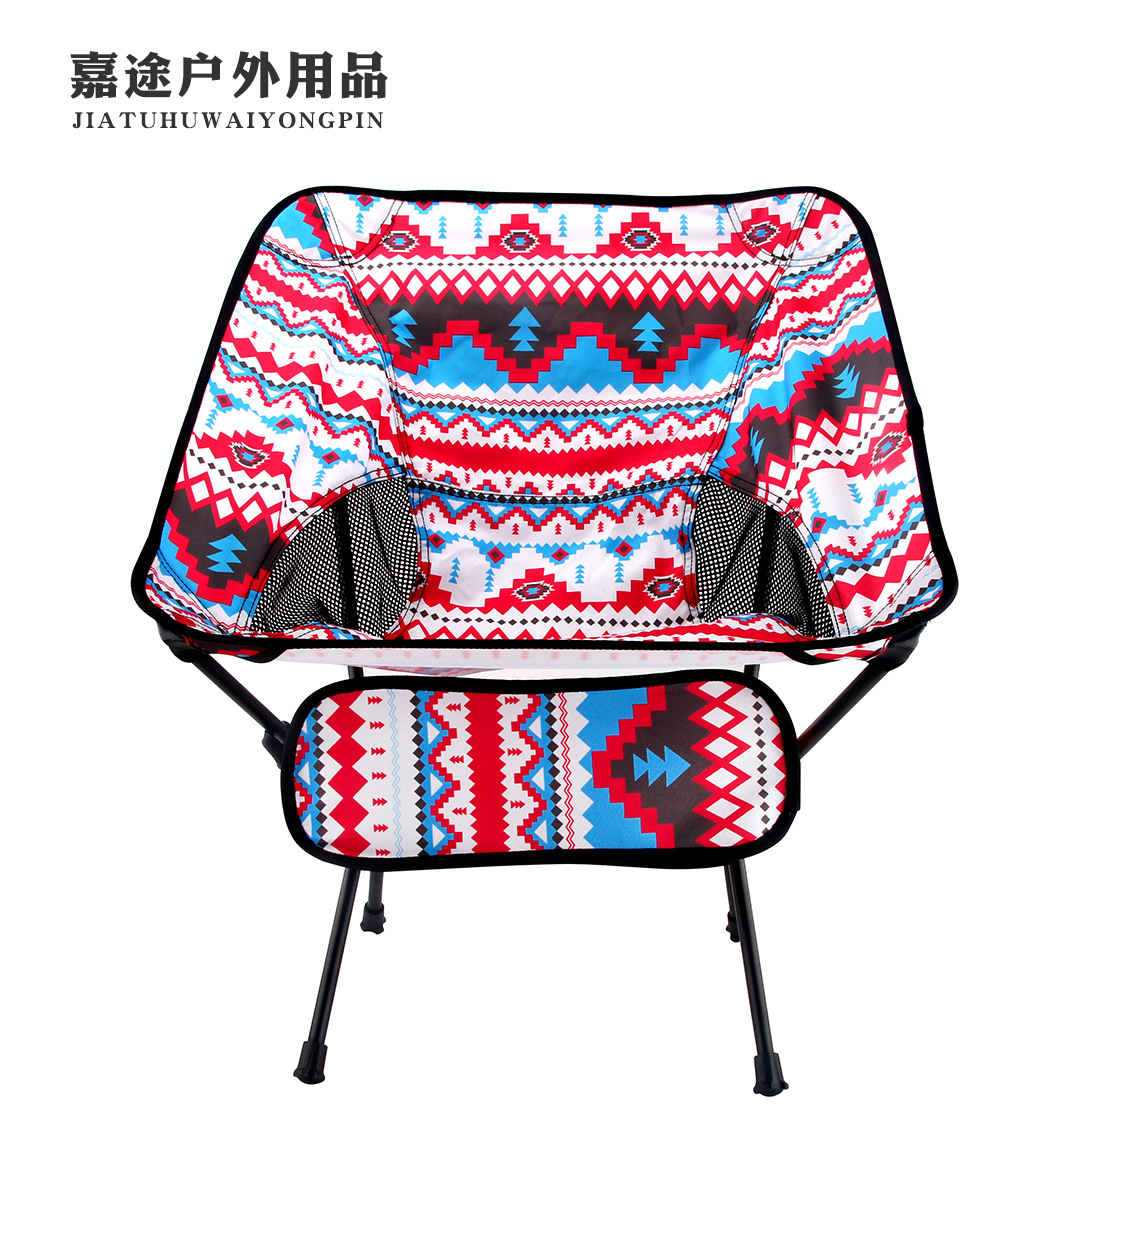 Outdoor Fishing Folding Chair Aluminium Alloy Camping Chair Portable Moon Chair Outdoor Leisure Beach Chair Wholesale